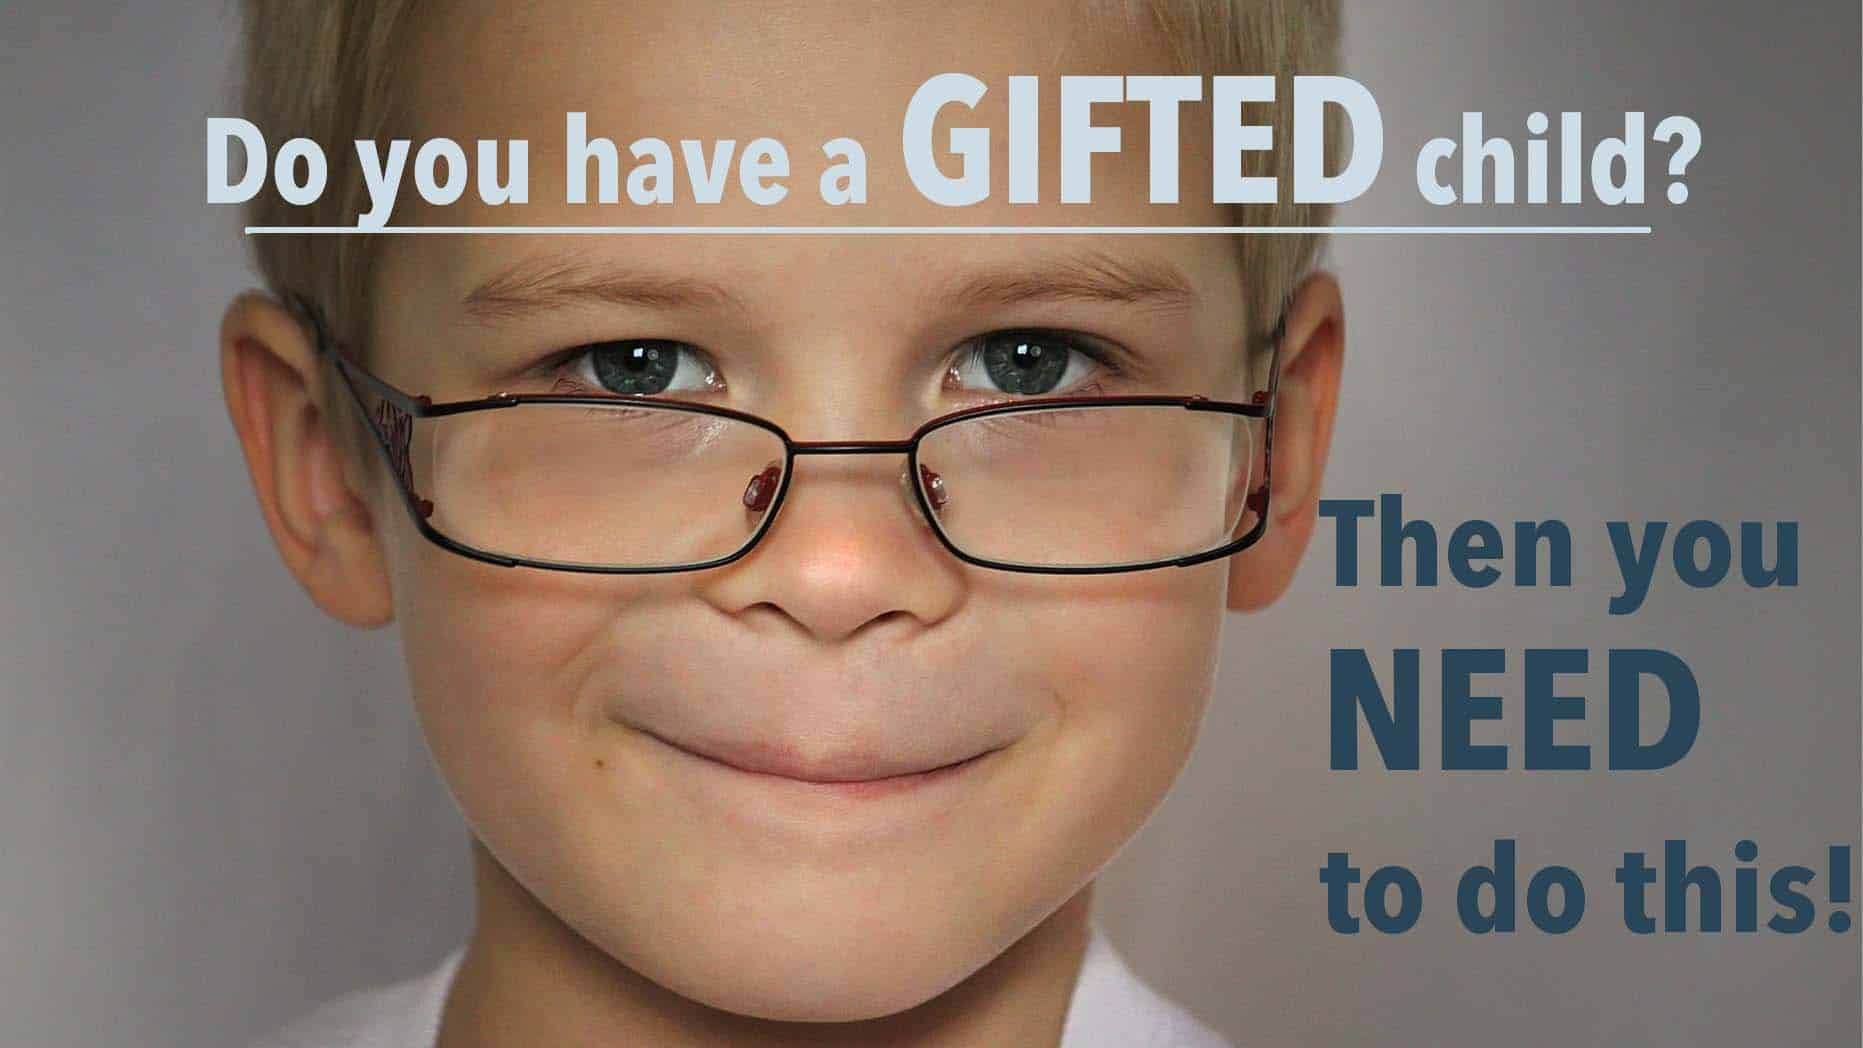 Do You Have a Gifted Child? Then you Need to do This! - Do you have a gifted child Then you need to do this 1920x1080 1